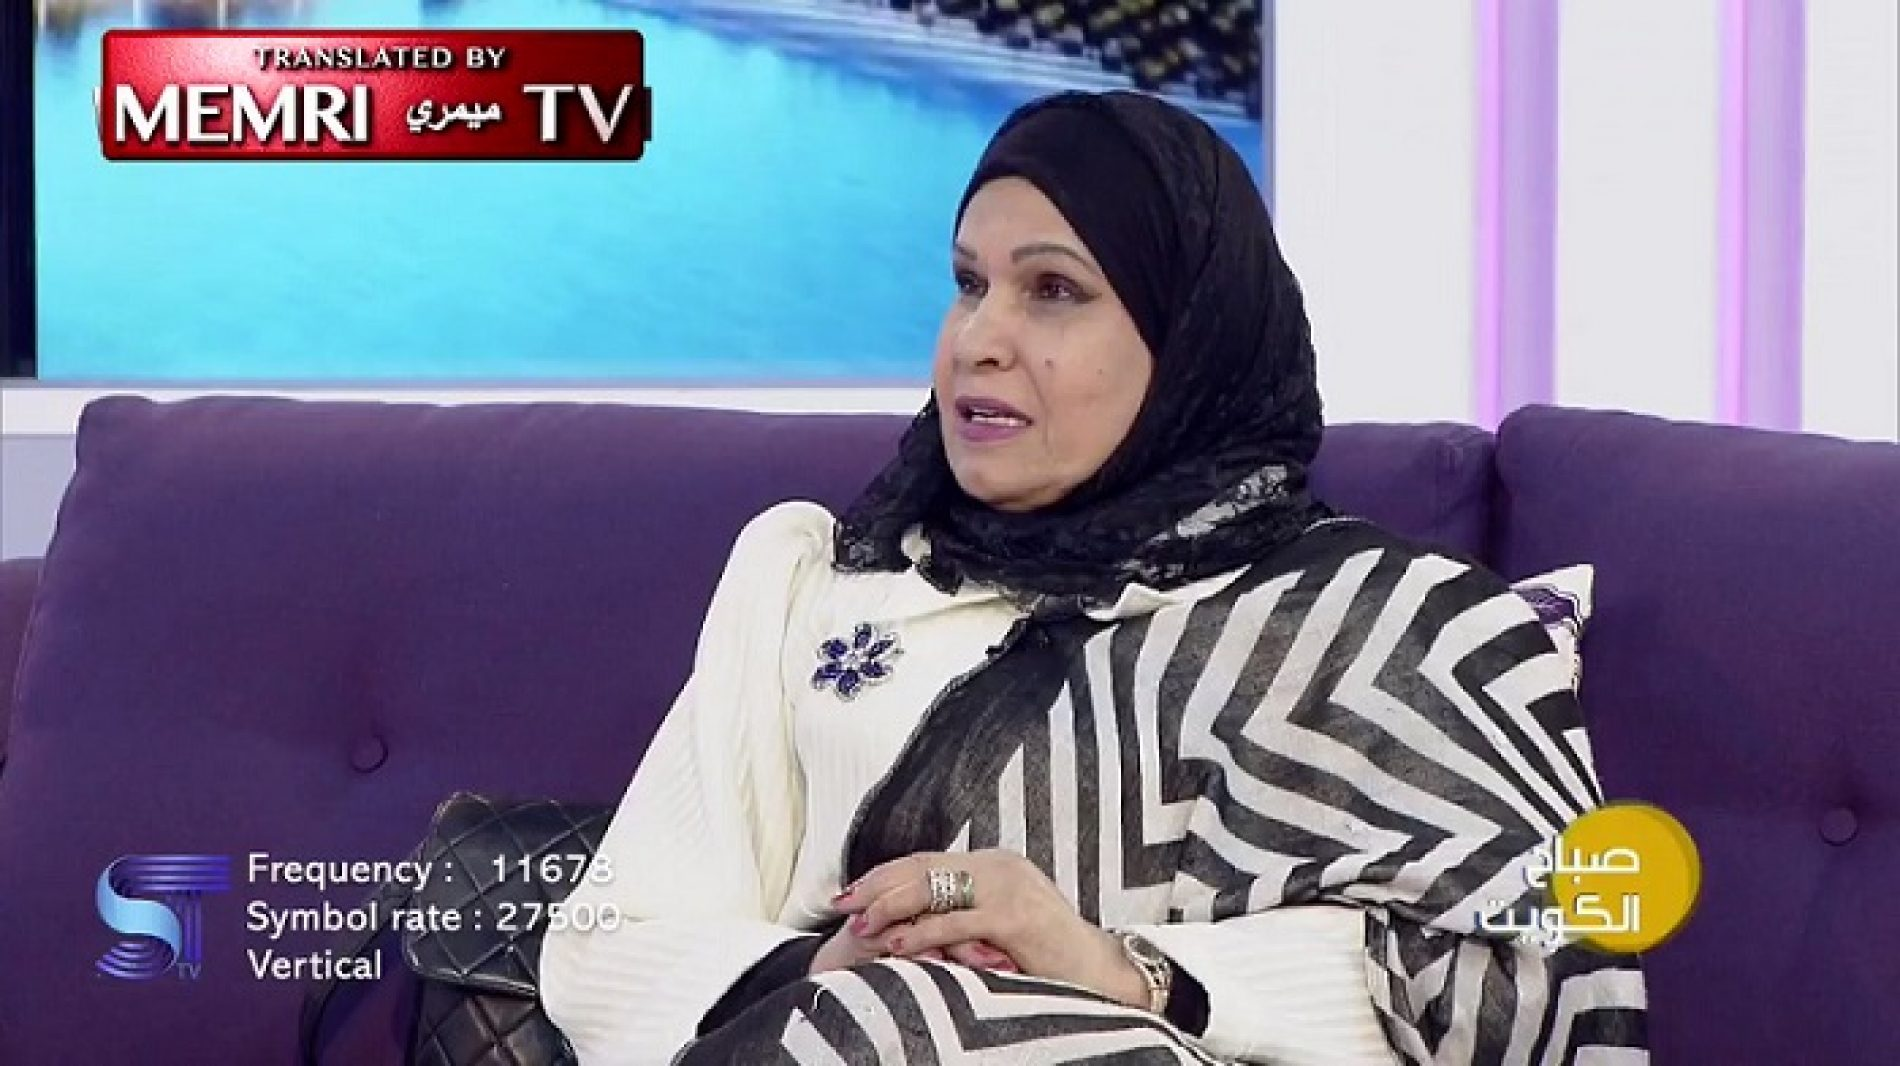 Kuwaiti researcher says homosexuality is caused by anal worm, claims she's invented a cure